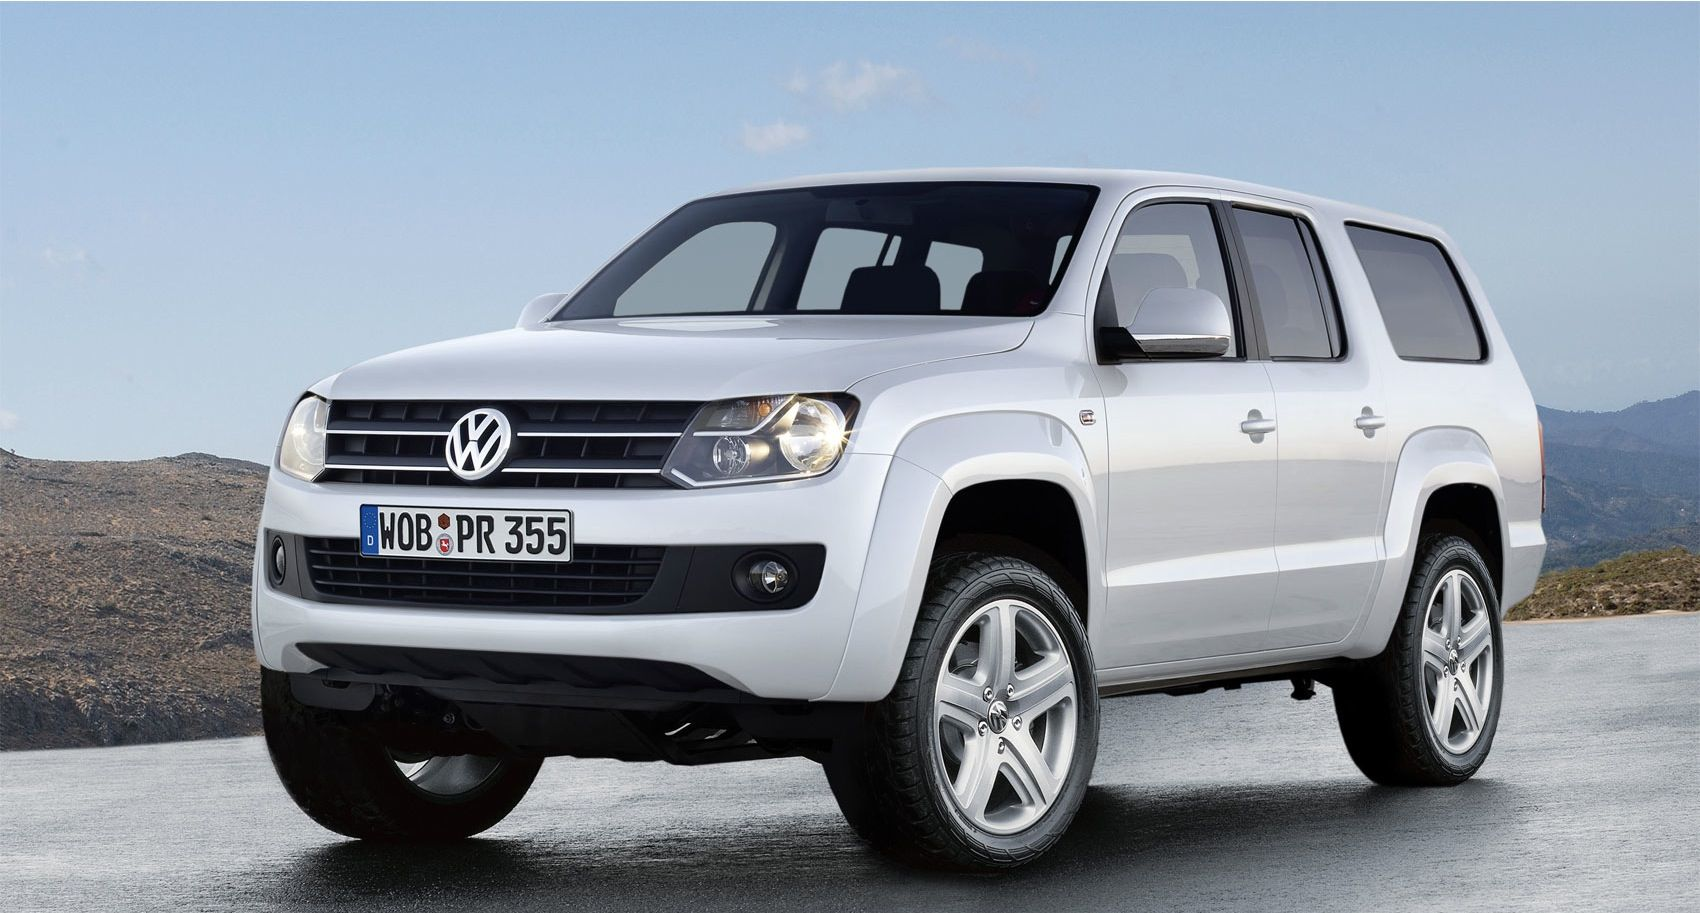 vw amarok s tv debut vw amarok suv 4x4 and cars. Black Bedroom Furniture Sets. Home Design Ideas